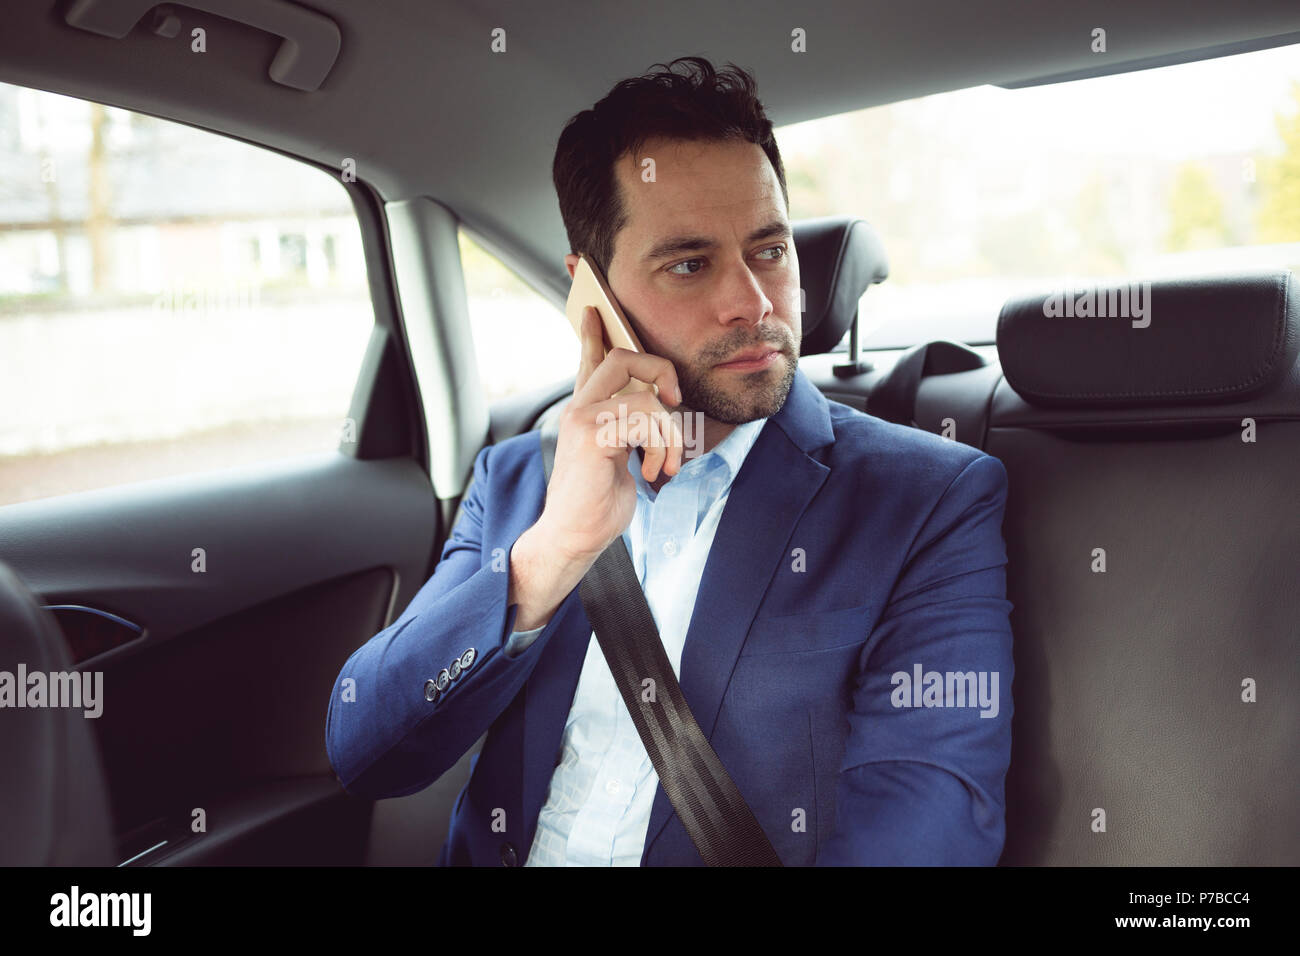 Businessman talking on mobile phone in a car Photo Stock